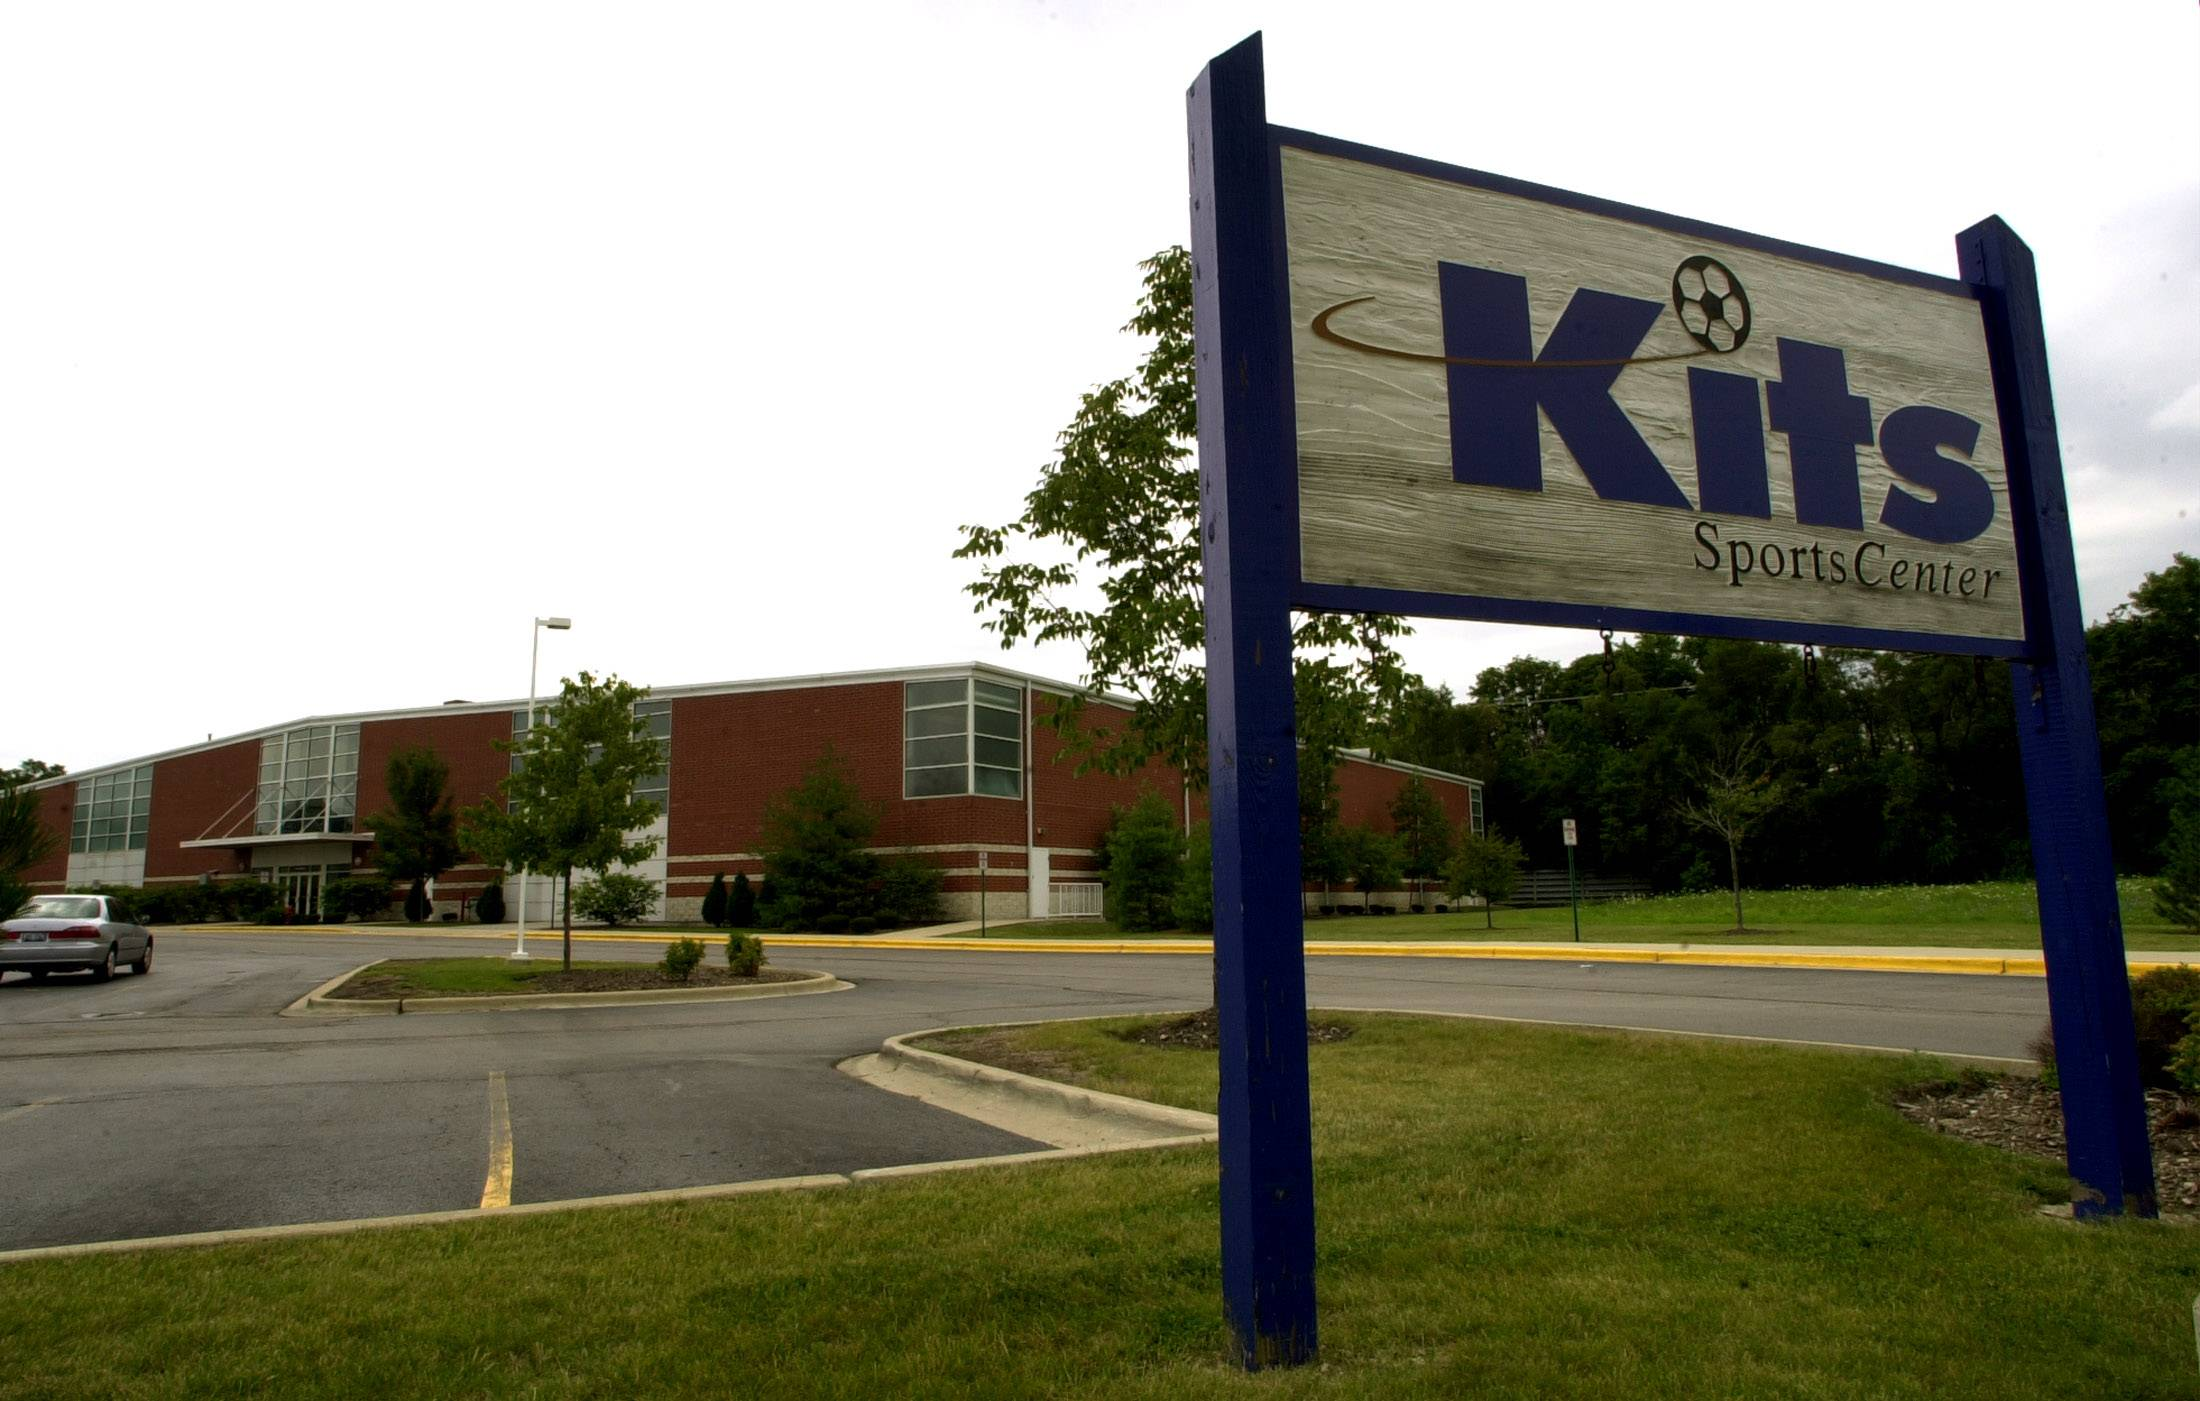 Kits Sports Center in Lake Zurich closes